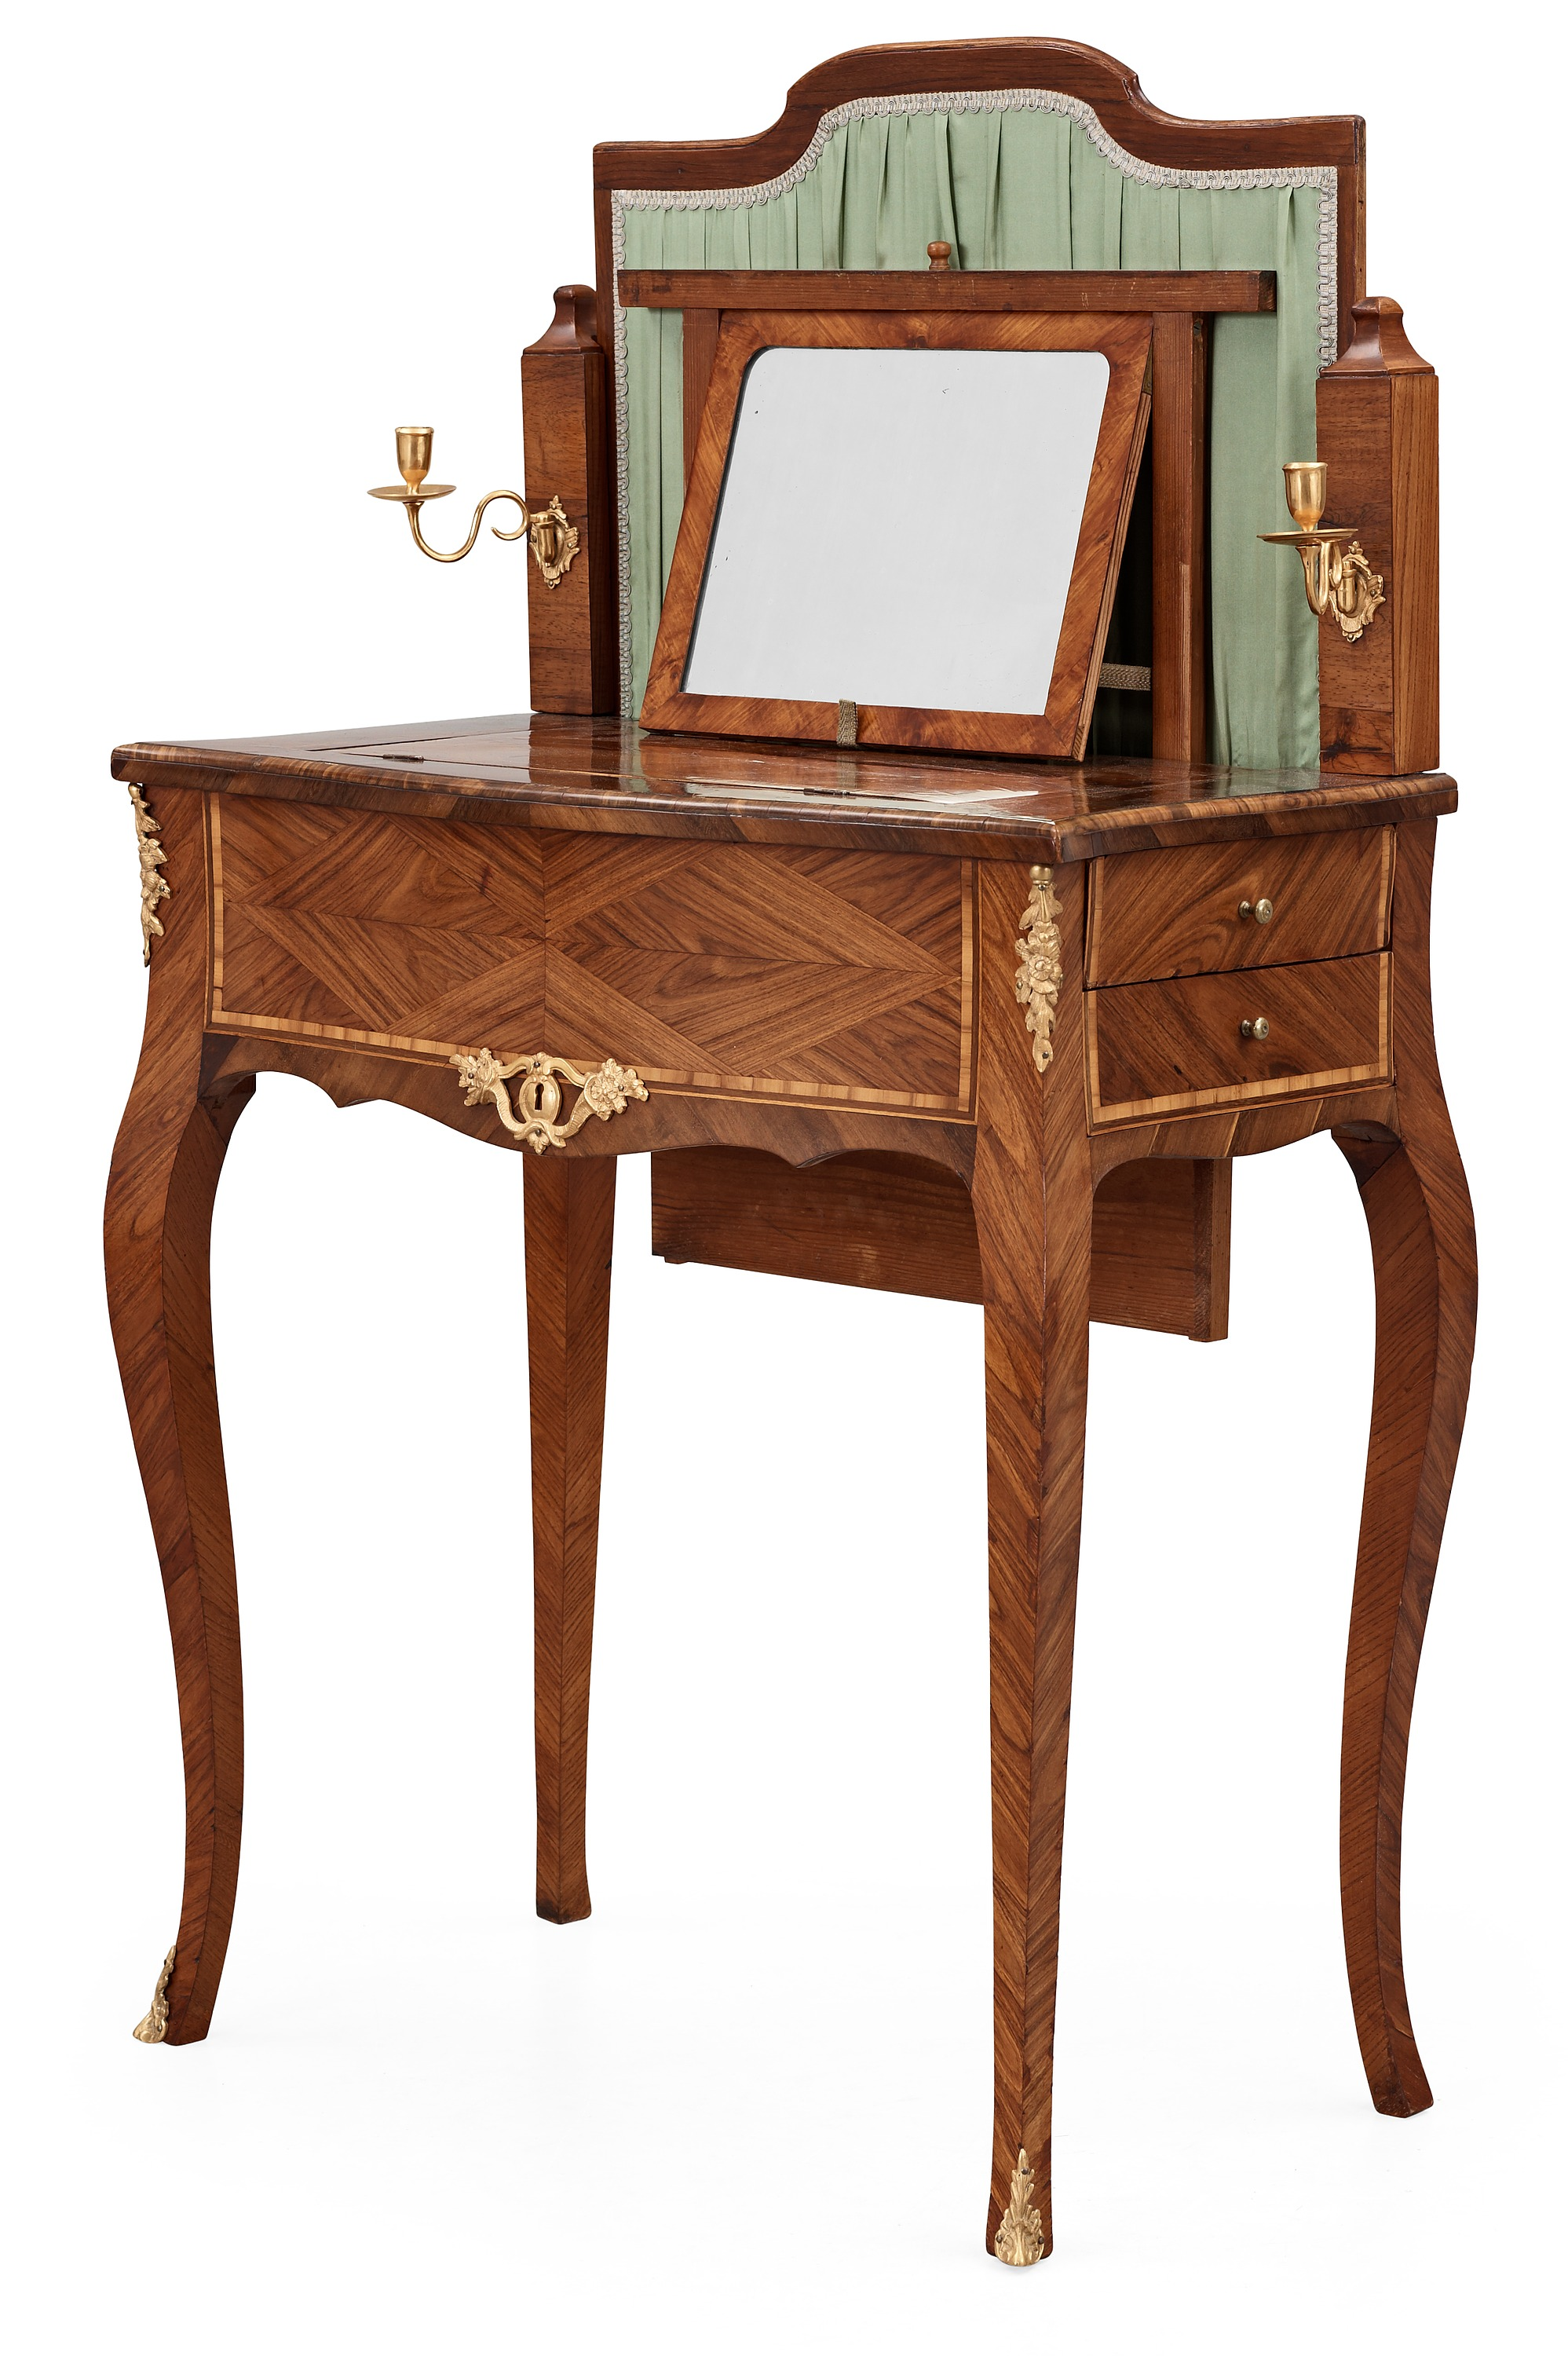 A Swedish Rococo 18th Century Dressing Table In The Manner